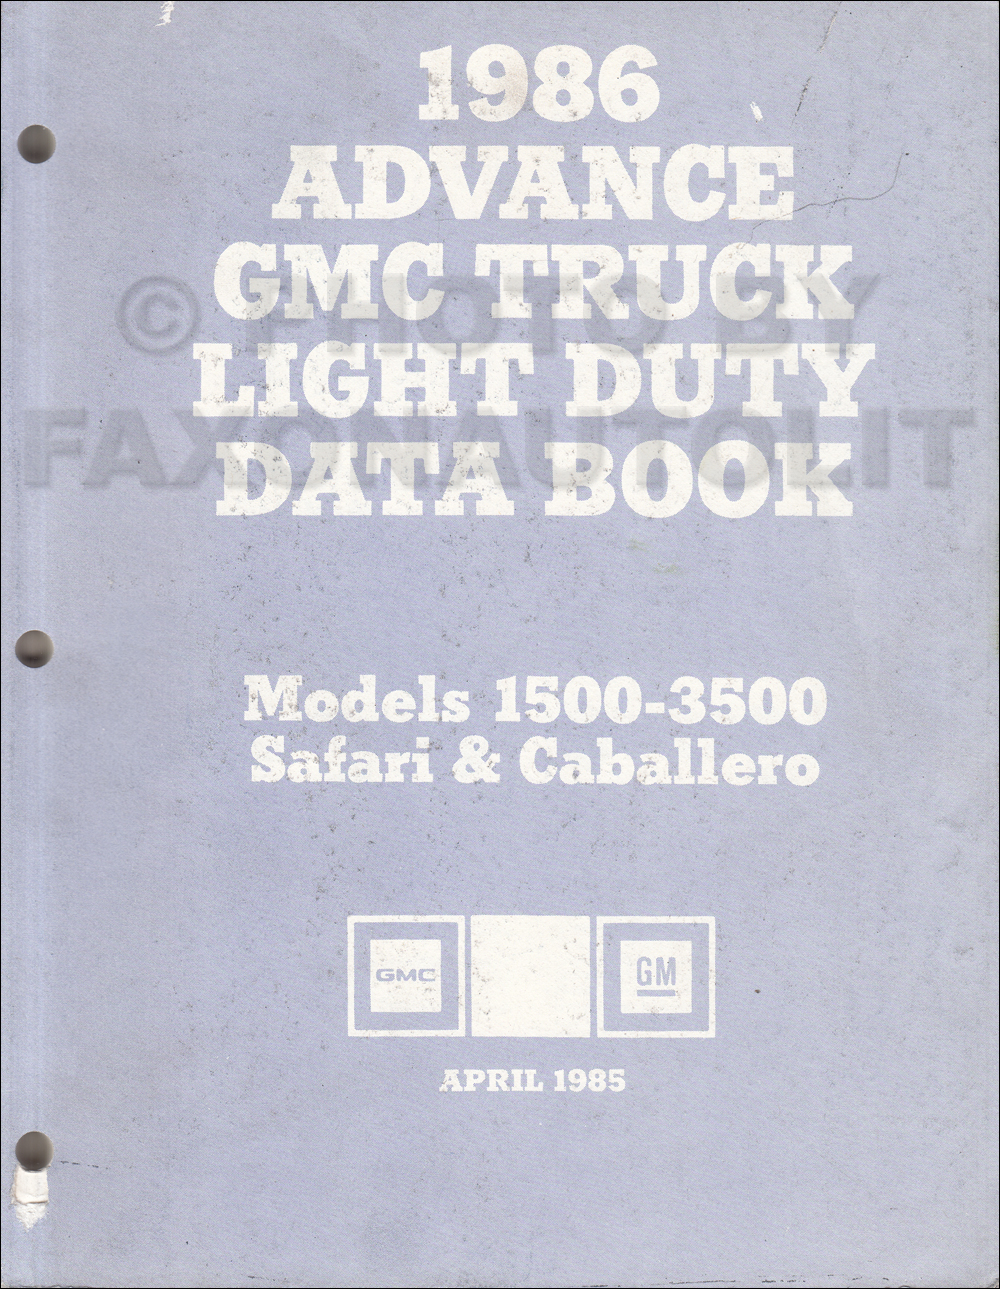 1986 GMC Advance Light Duty Data Book Original